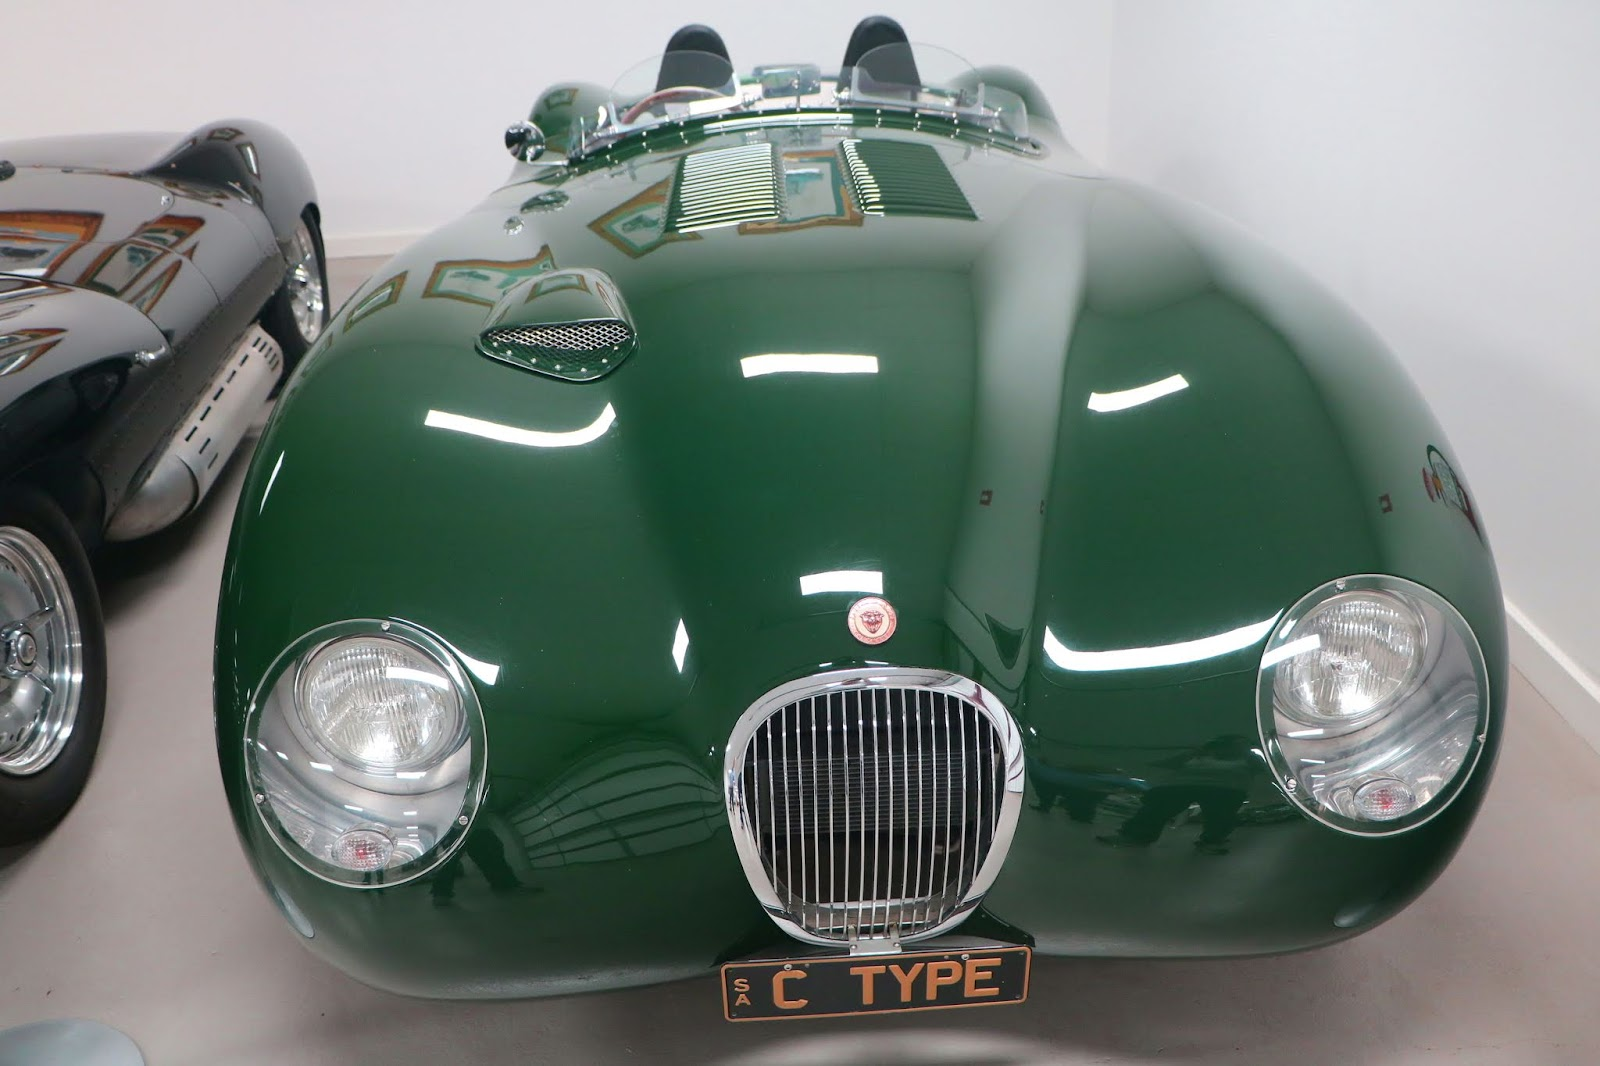 Carl_Lindner_Collection - 2011 Jaguar C-Type Replica 02.JPG